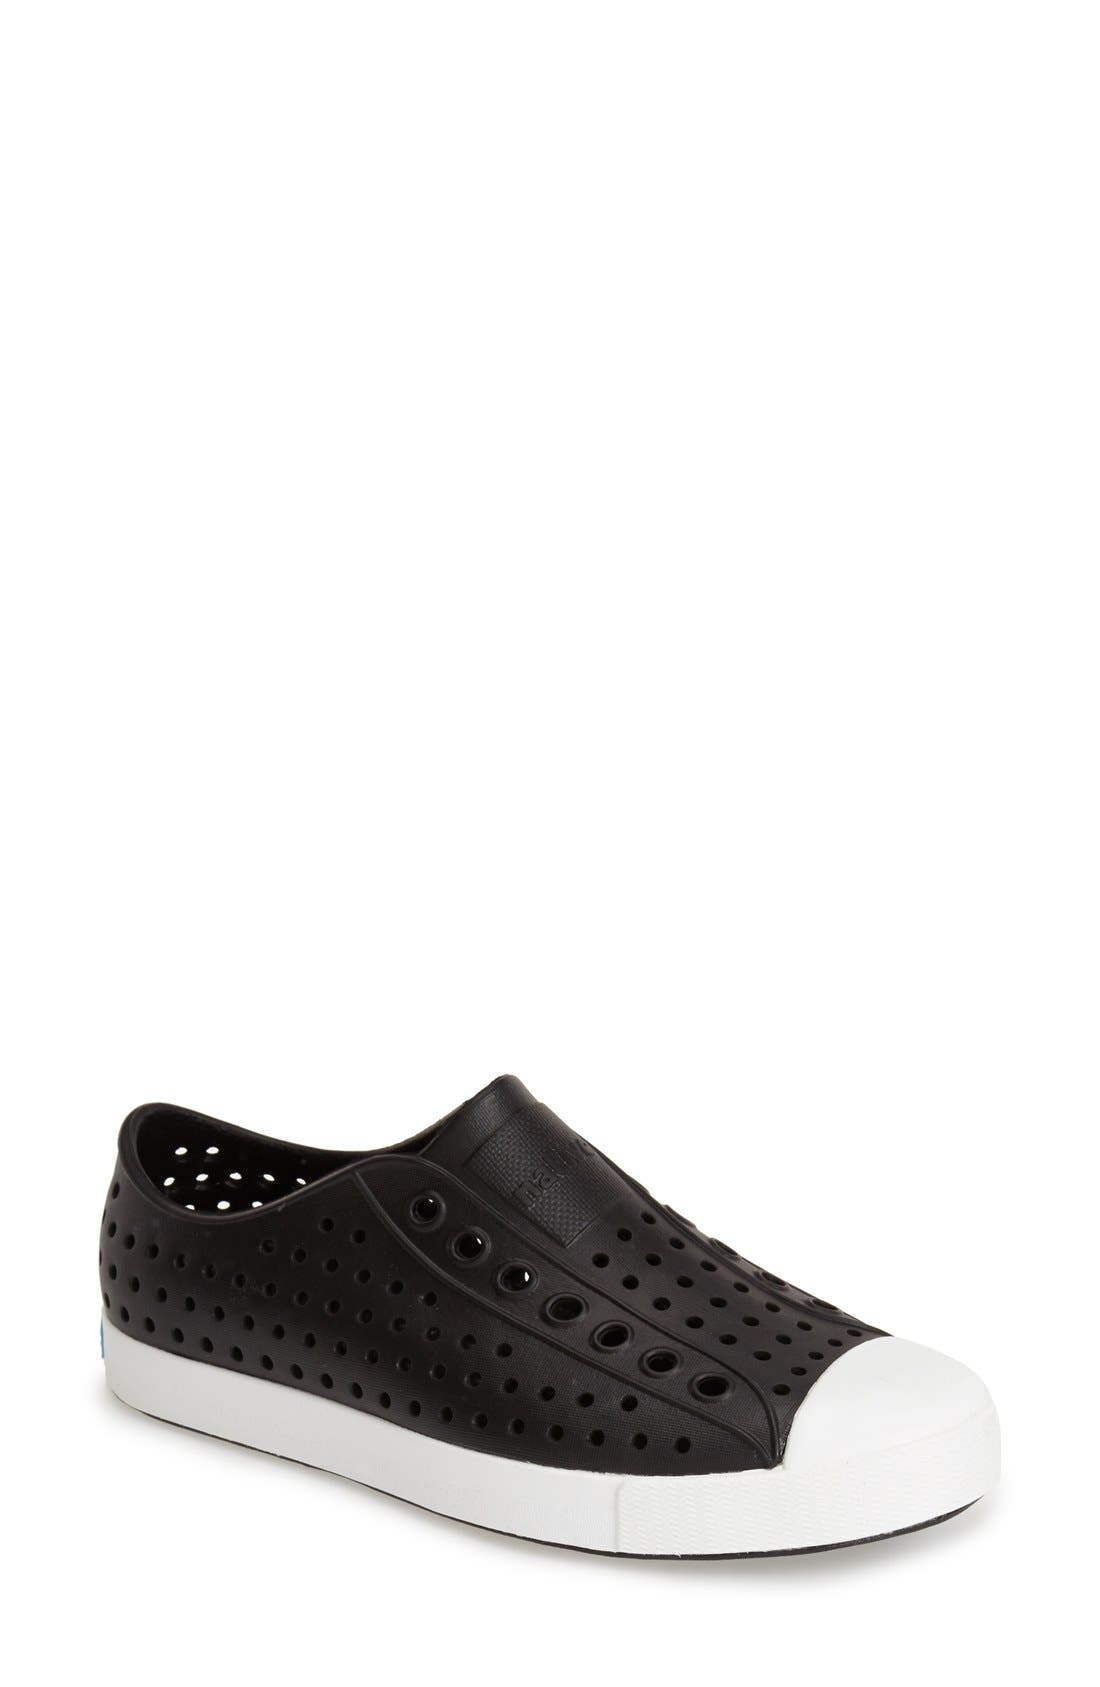 Native Shoes Jefferson Vegan Perforated Sneaker, Black